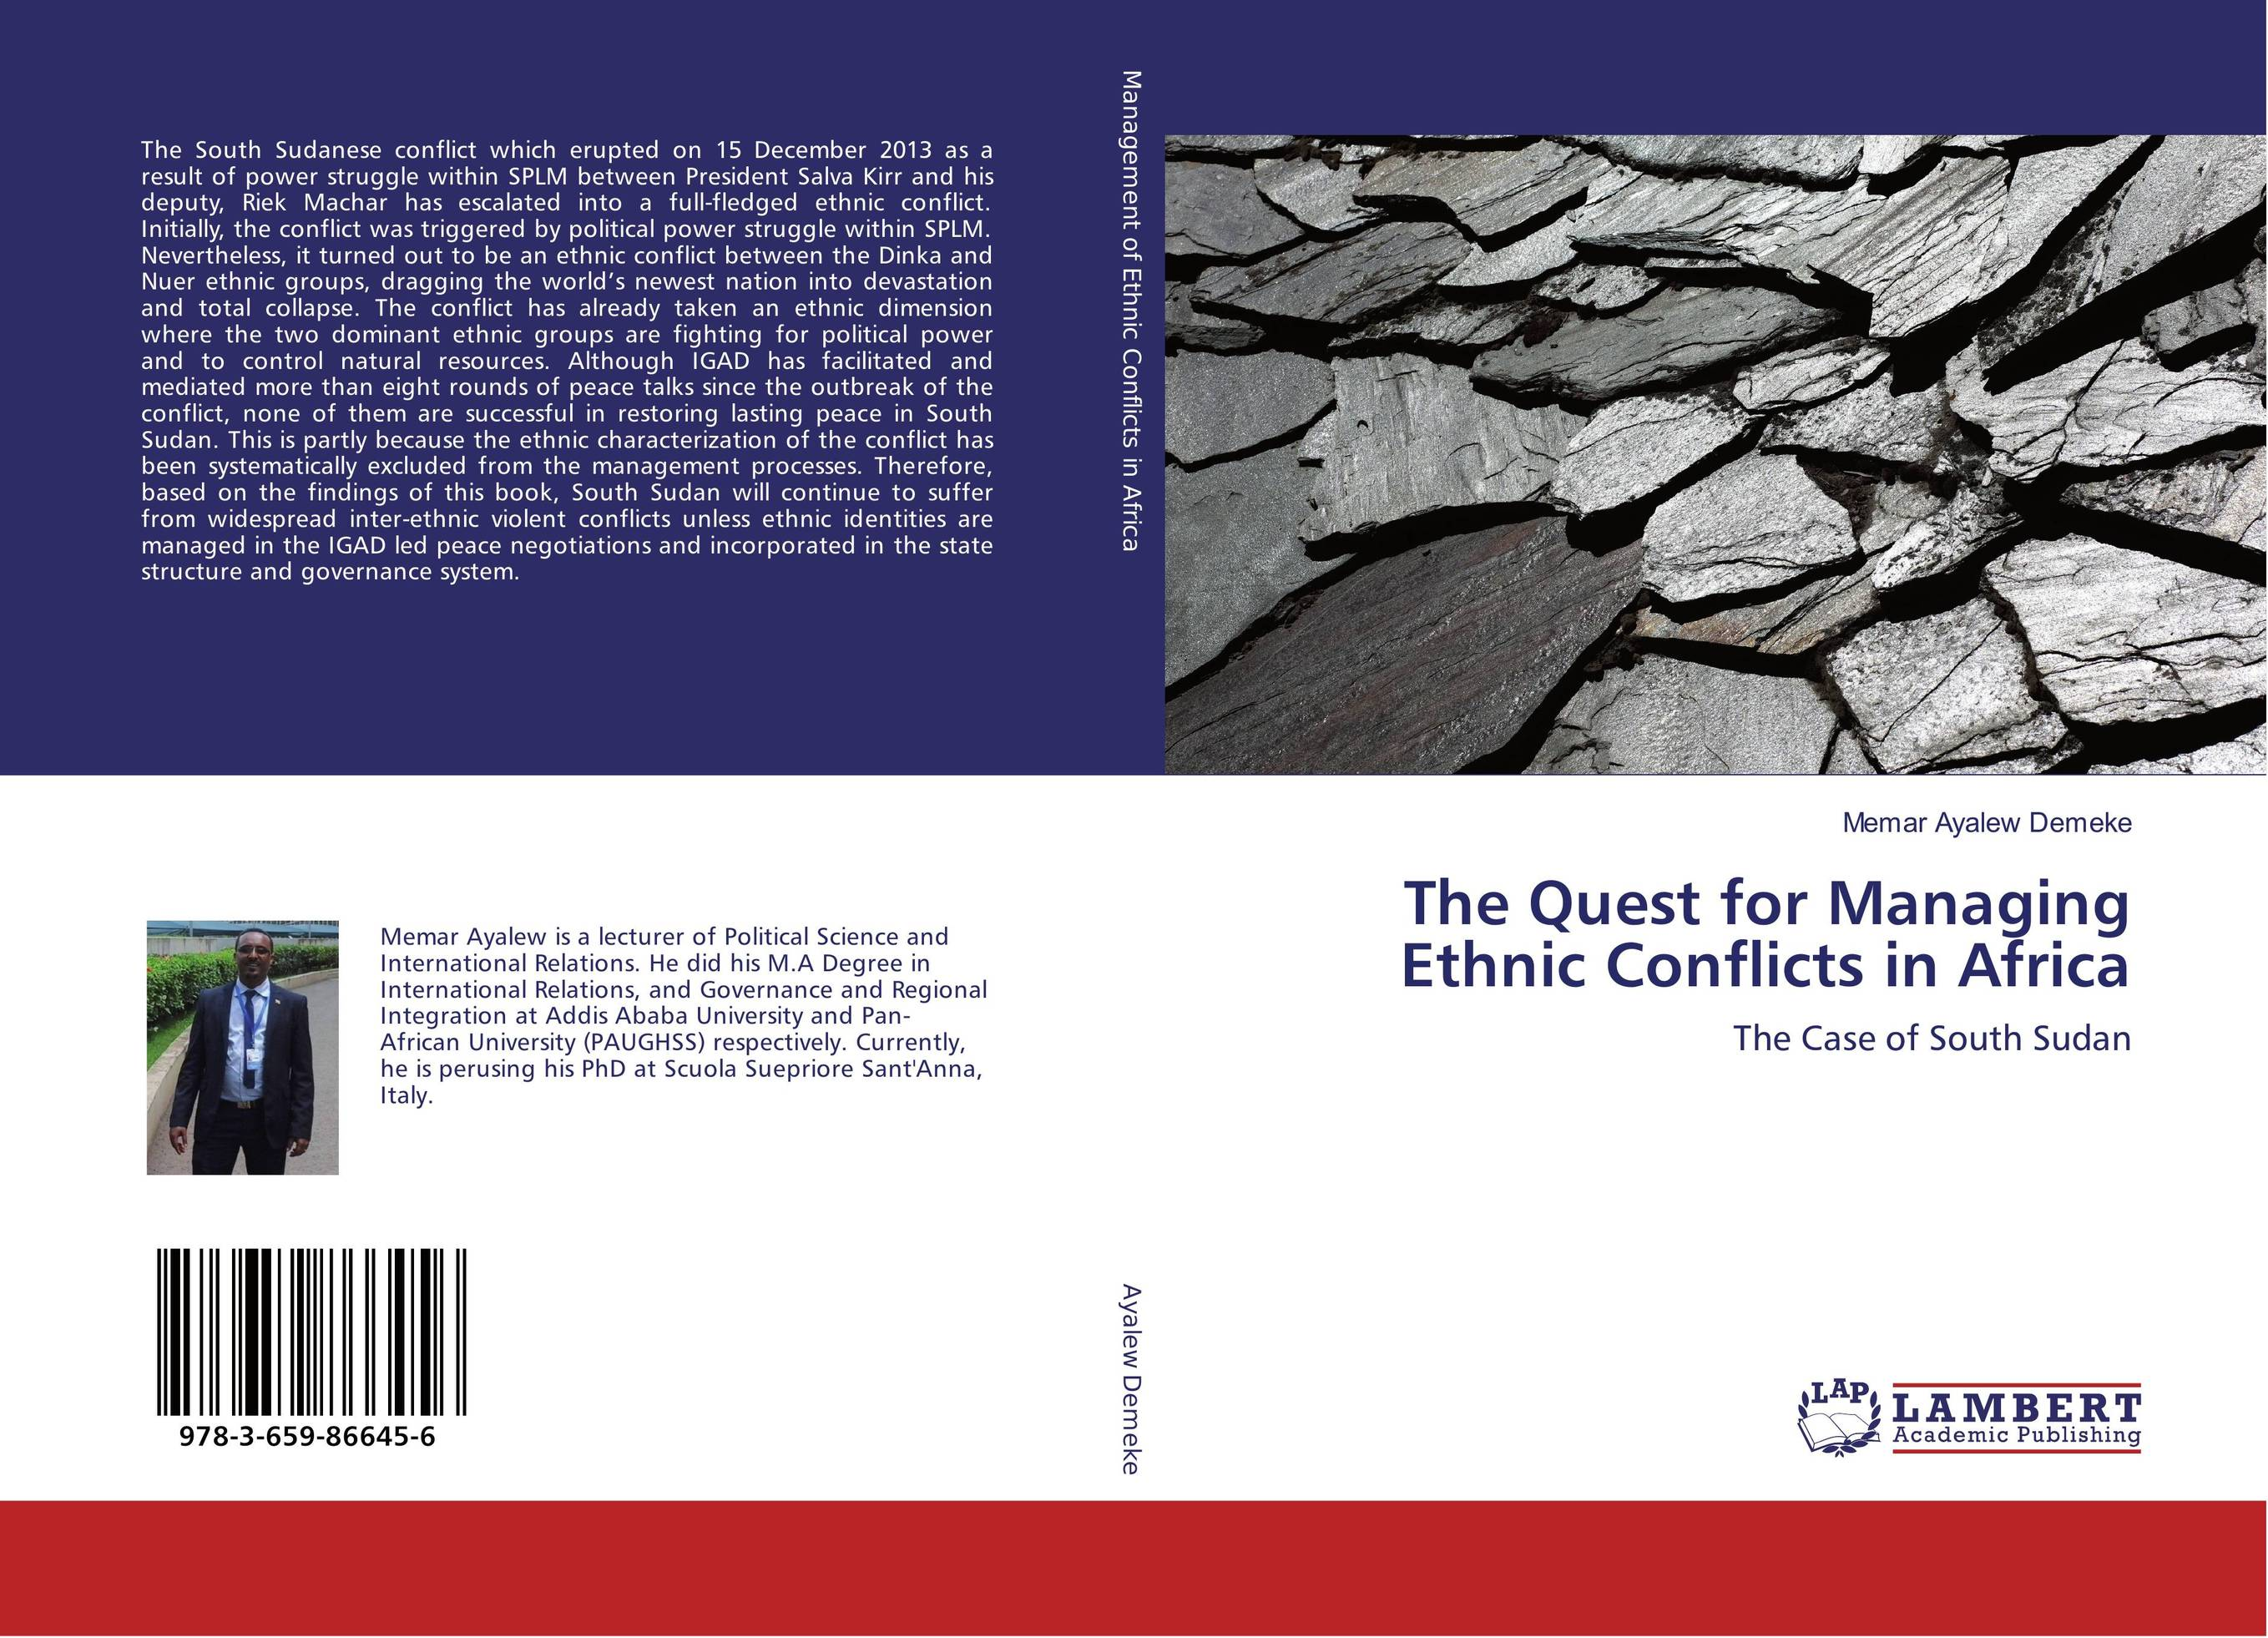 the religious conflict in south asia essay The states of south asia are some of the most populous and rapidly growing in the world increasingly economically integrated with one another and the this collection of multi-disciplinary essays examines the economic causes and consequences of military conflict in south asia from a variety of.